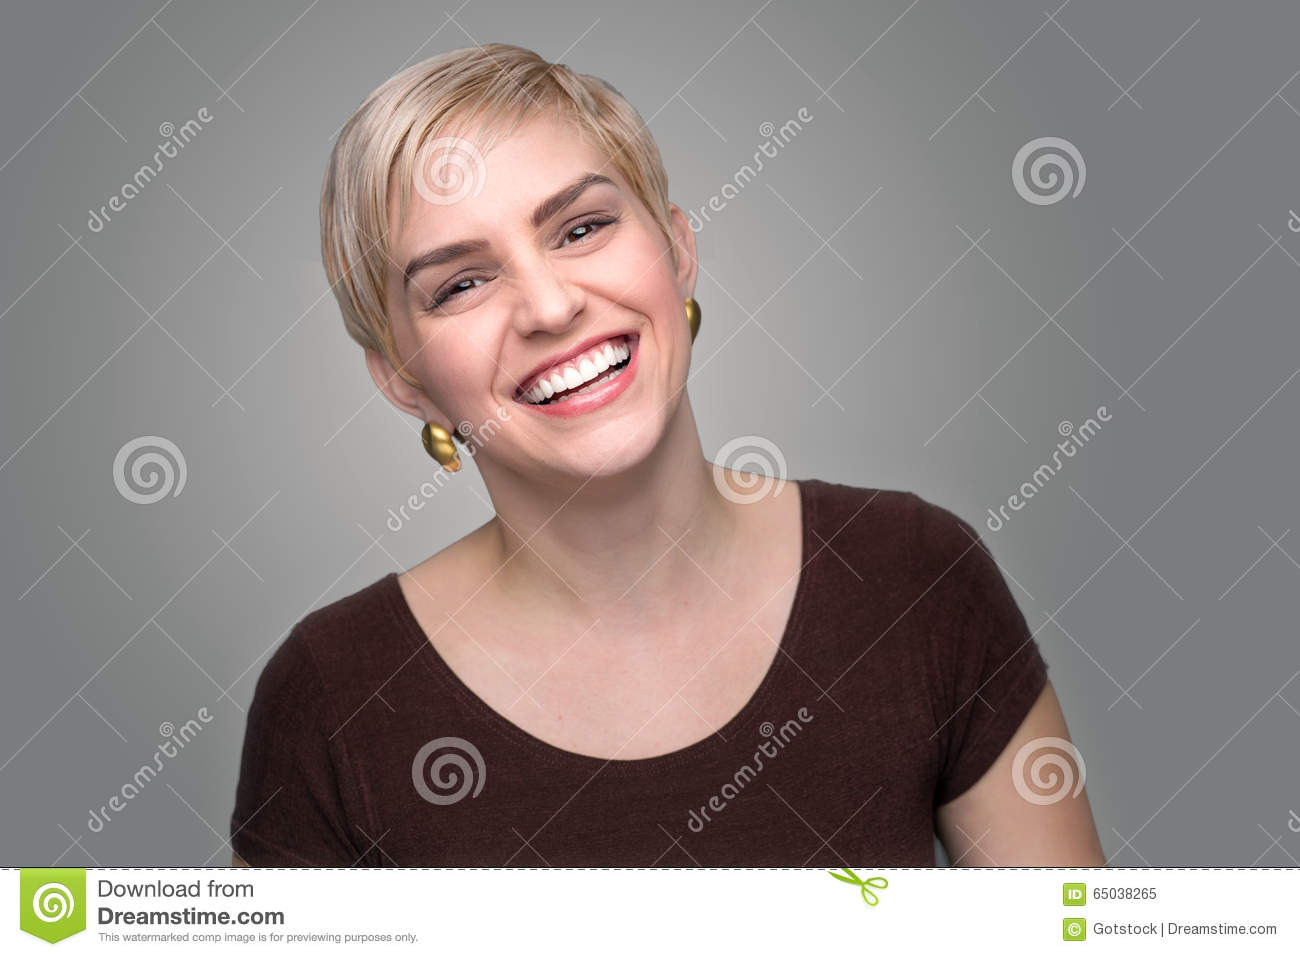 Adorable Laughing Lady Head Shot Short Pixie Haircut Modern Style